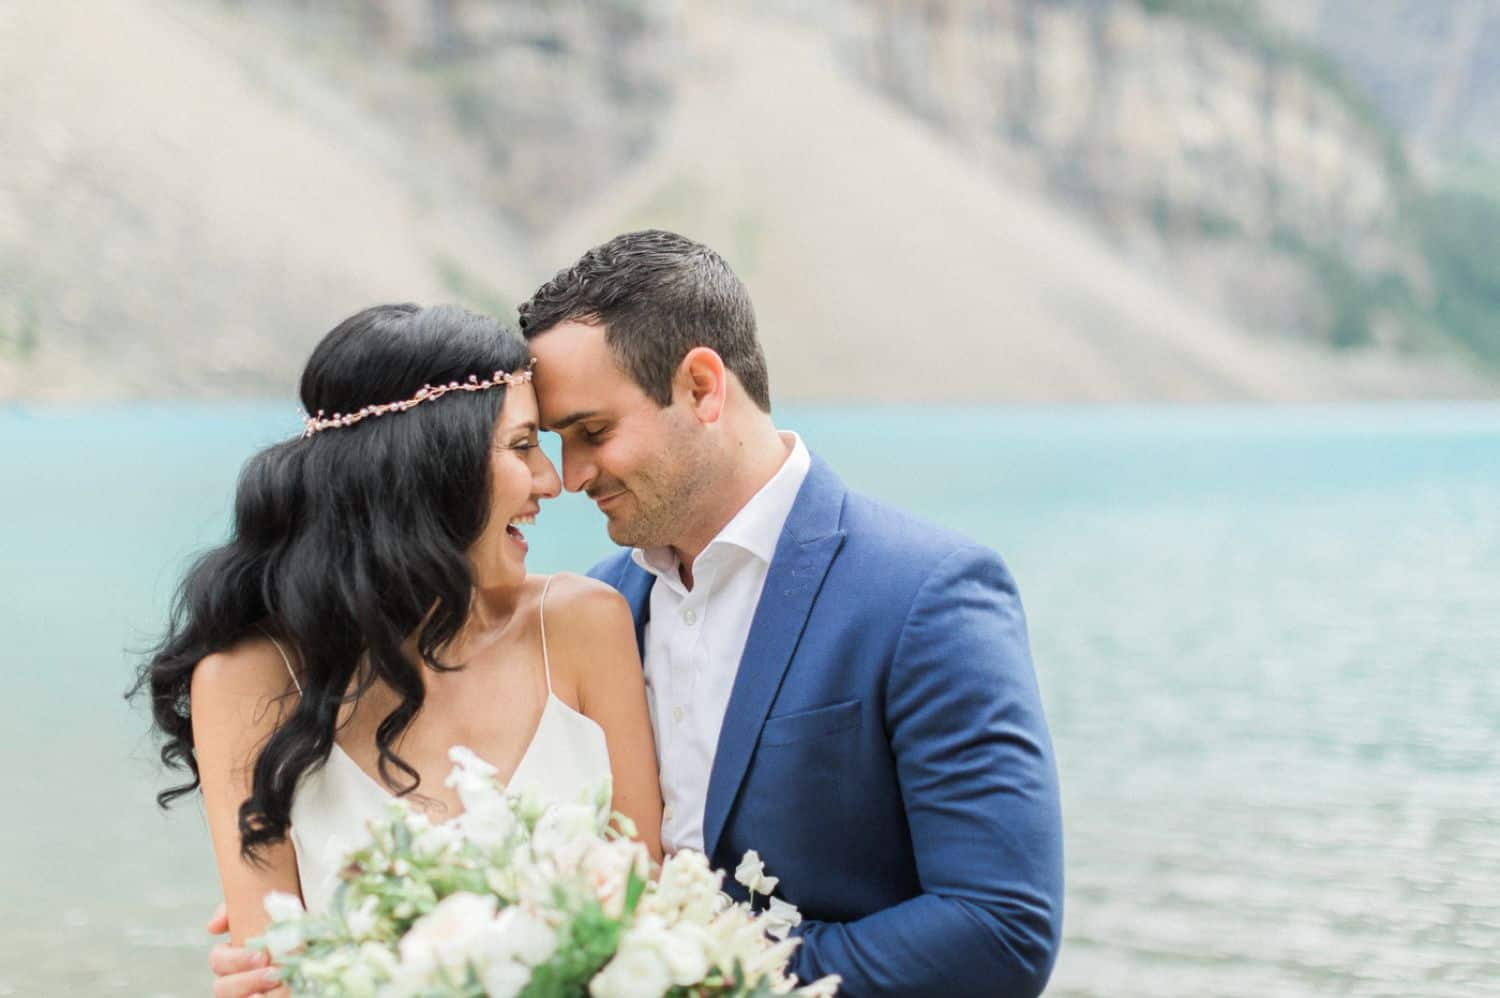 Lakeside Mountain Wedding by Madeleine Collins: Prevent Chargebacks